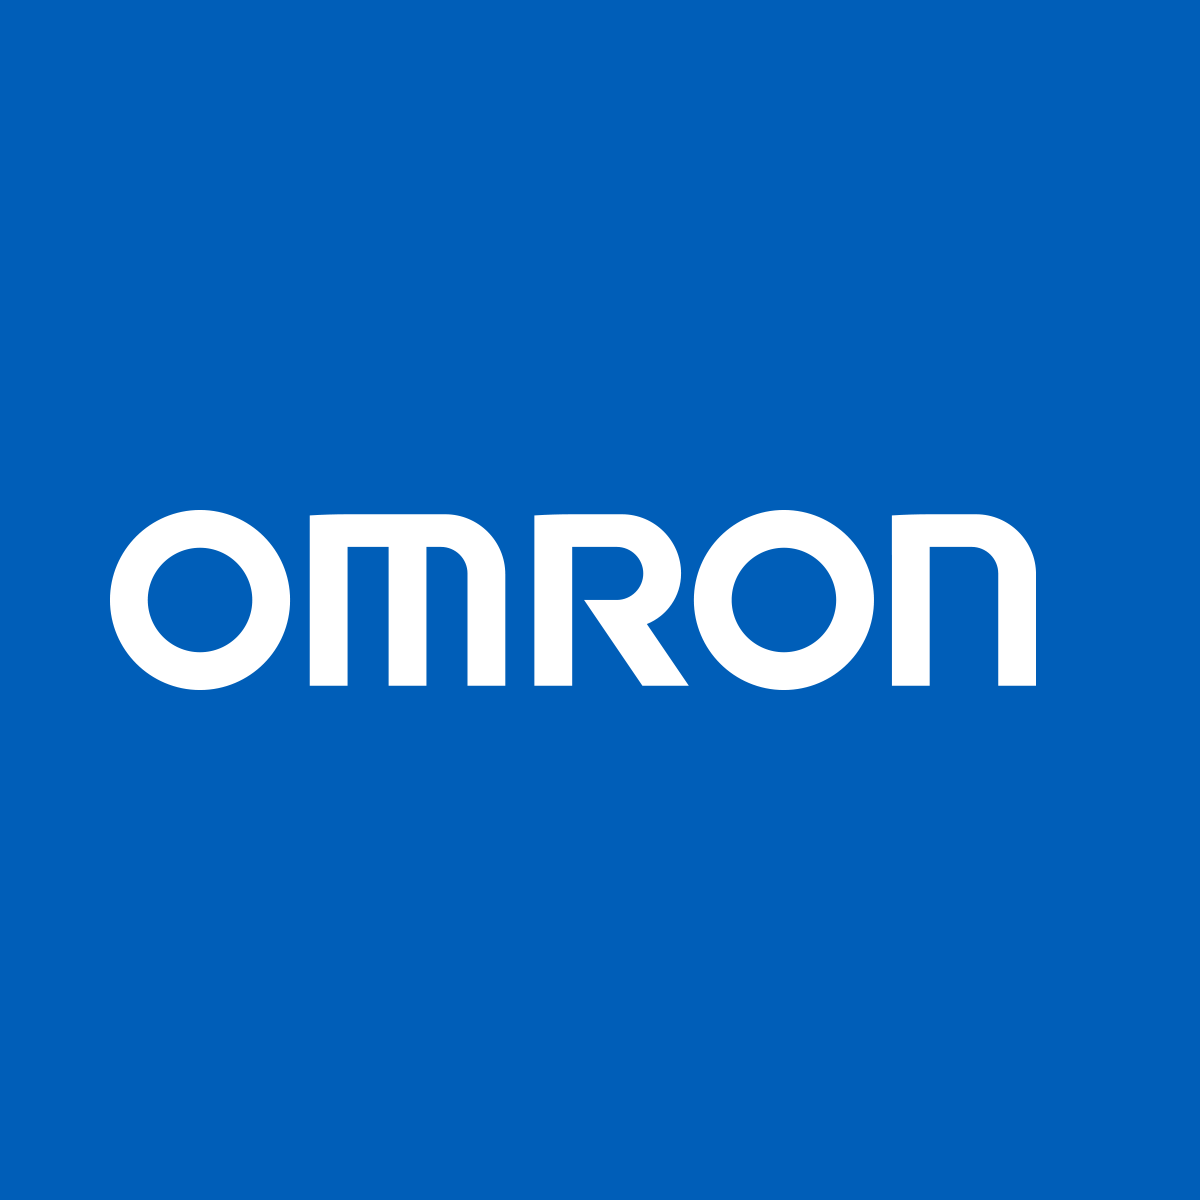 OMRON Healthcare - Zero compromise on healthier lives